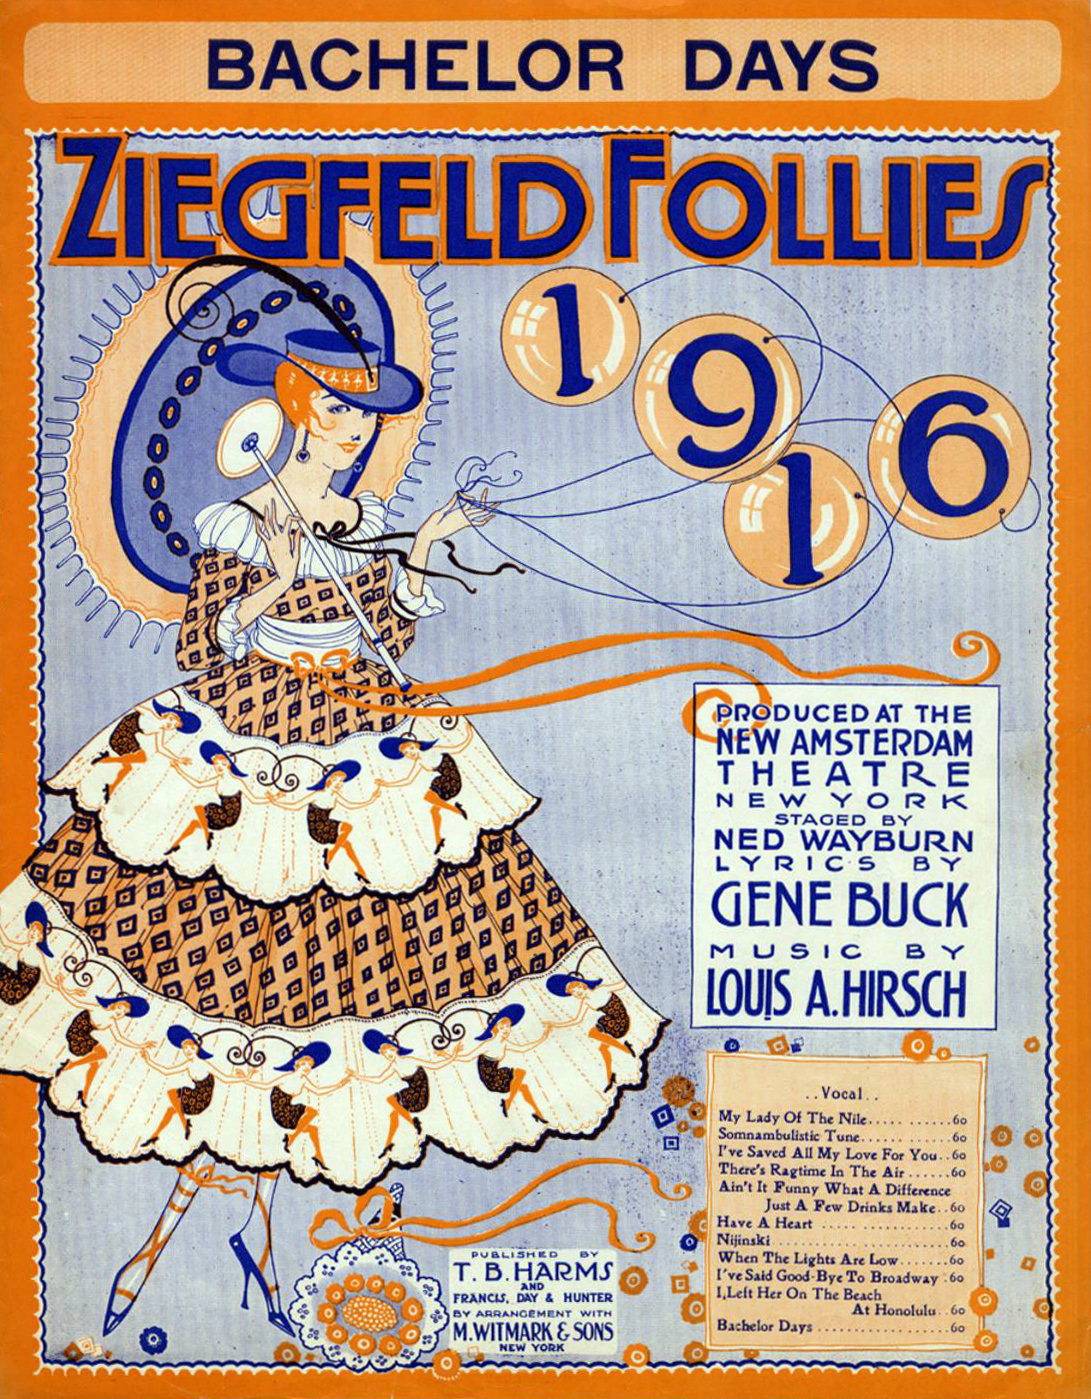 Ziegfeld Sheet Music - Ziegfeld Follies of 1916 (Bachelor Days)